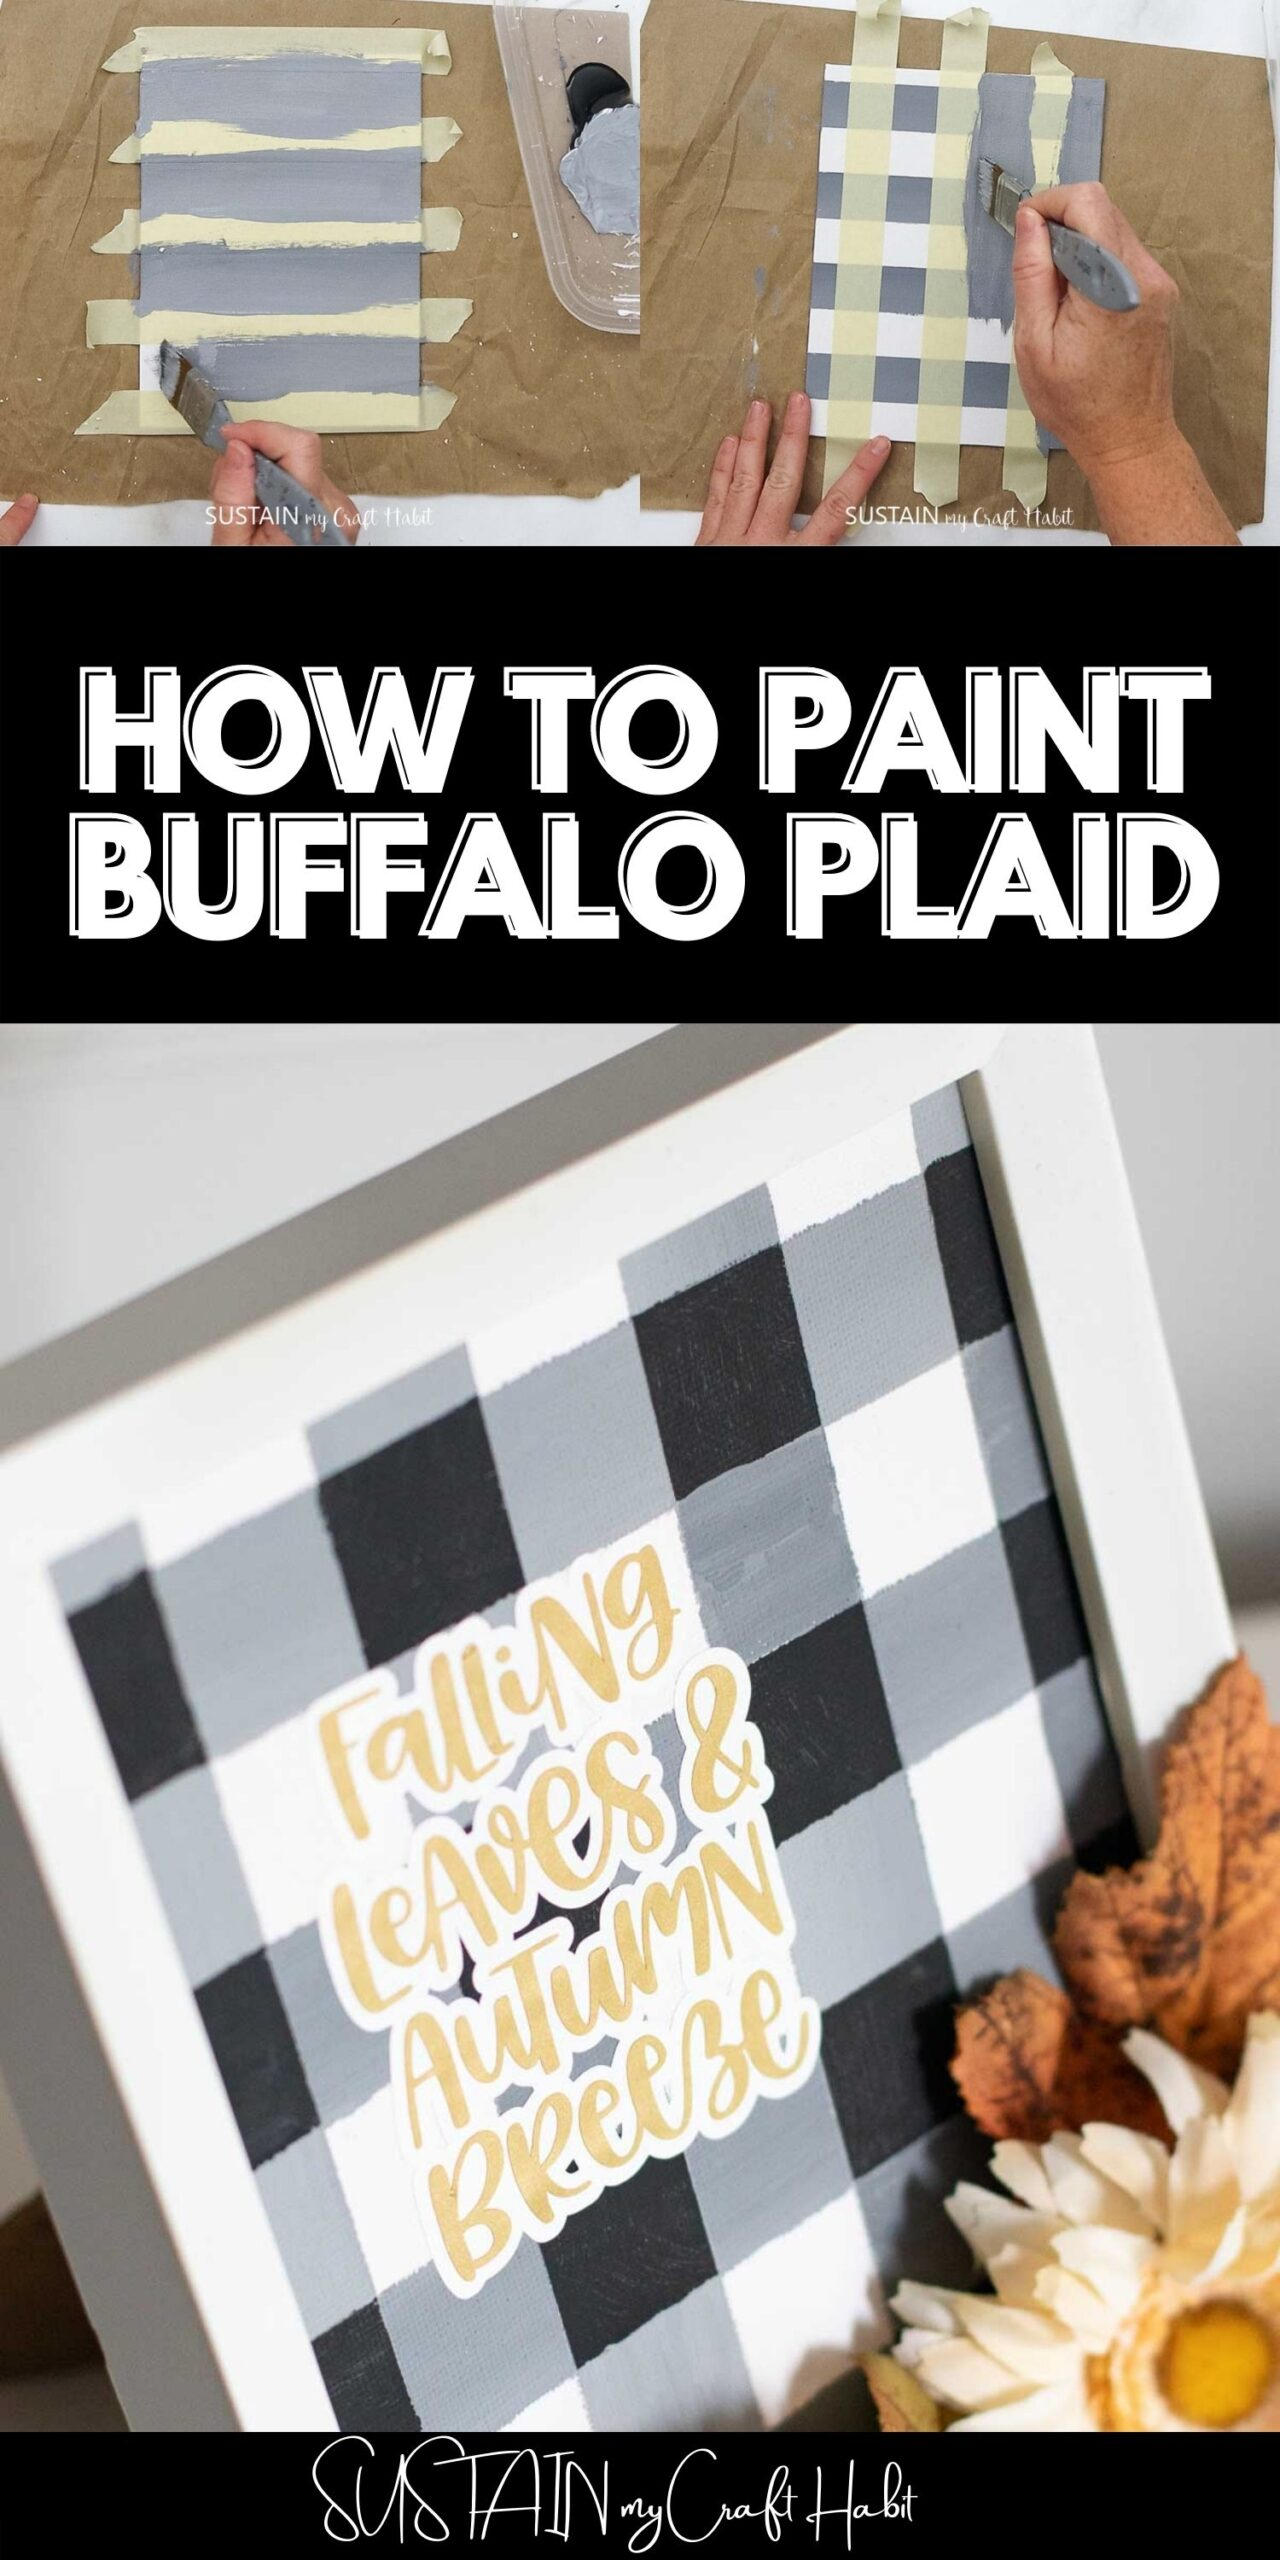 Collage showing to paint buffalo plaid with text overlay.